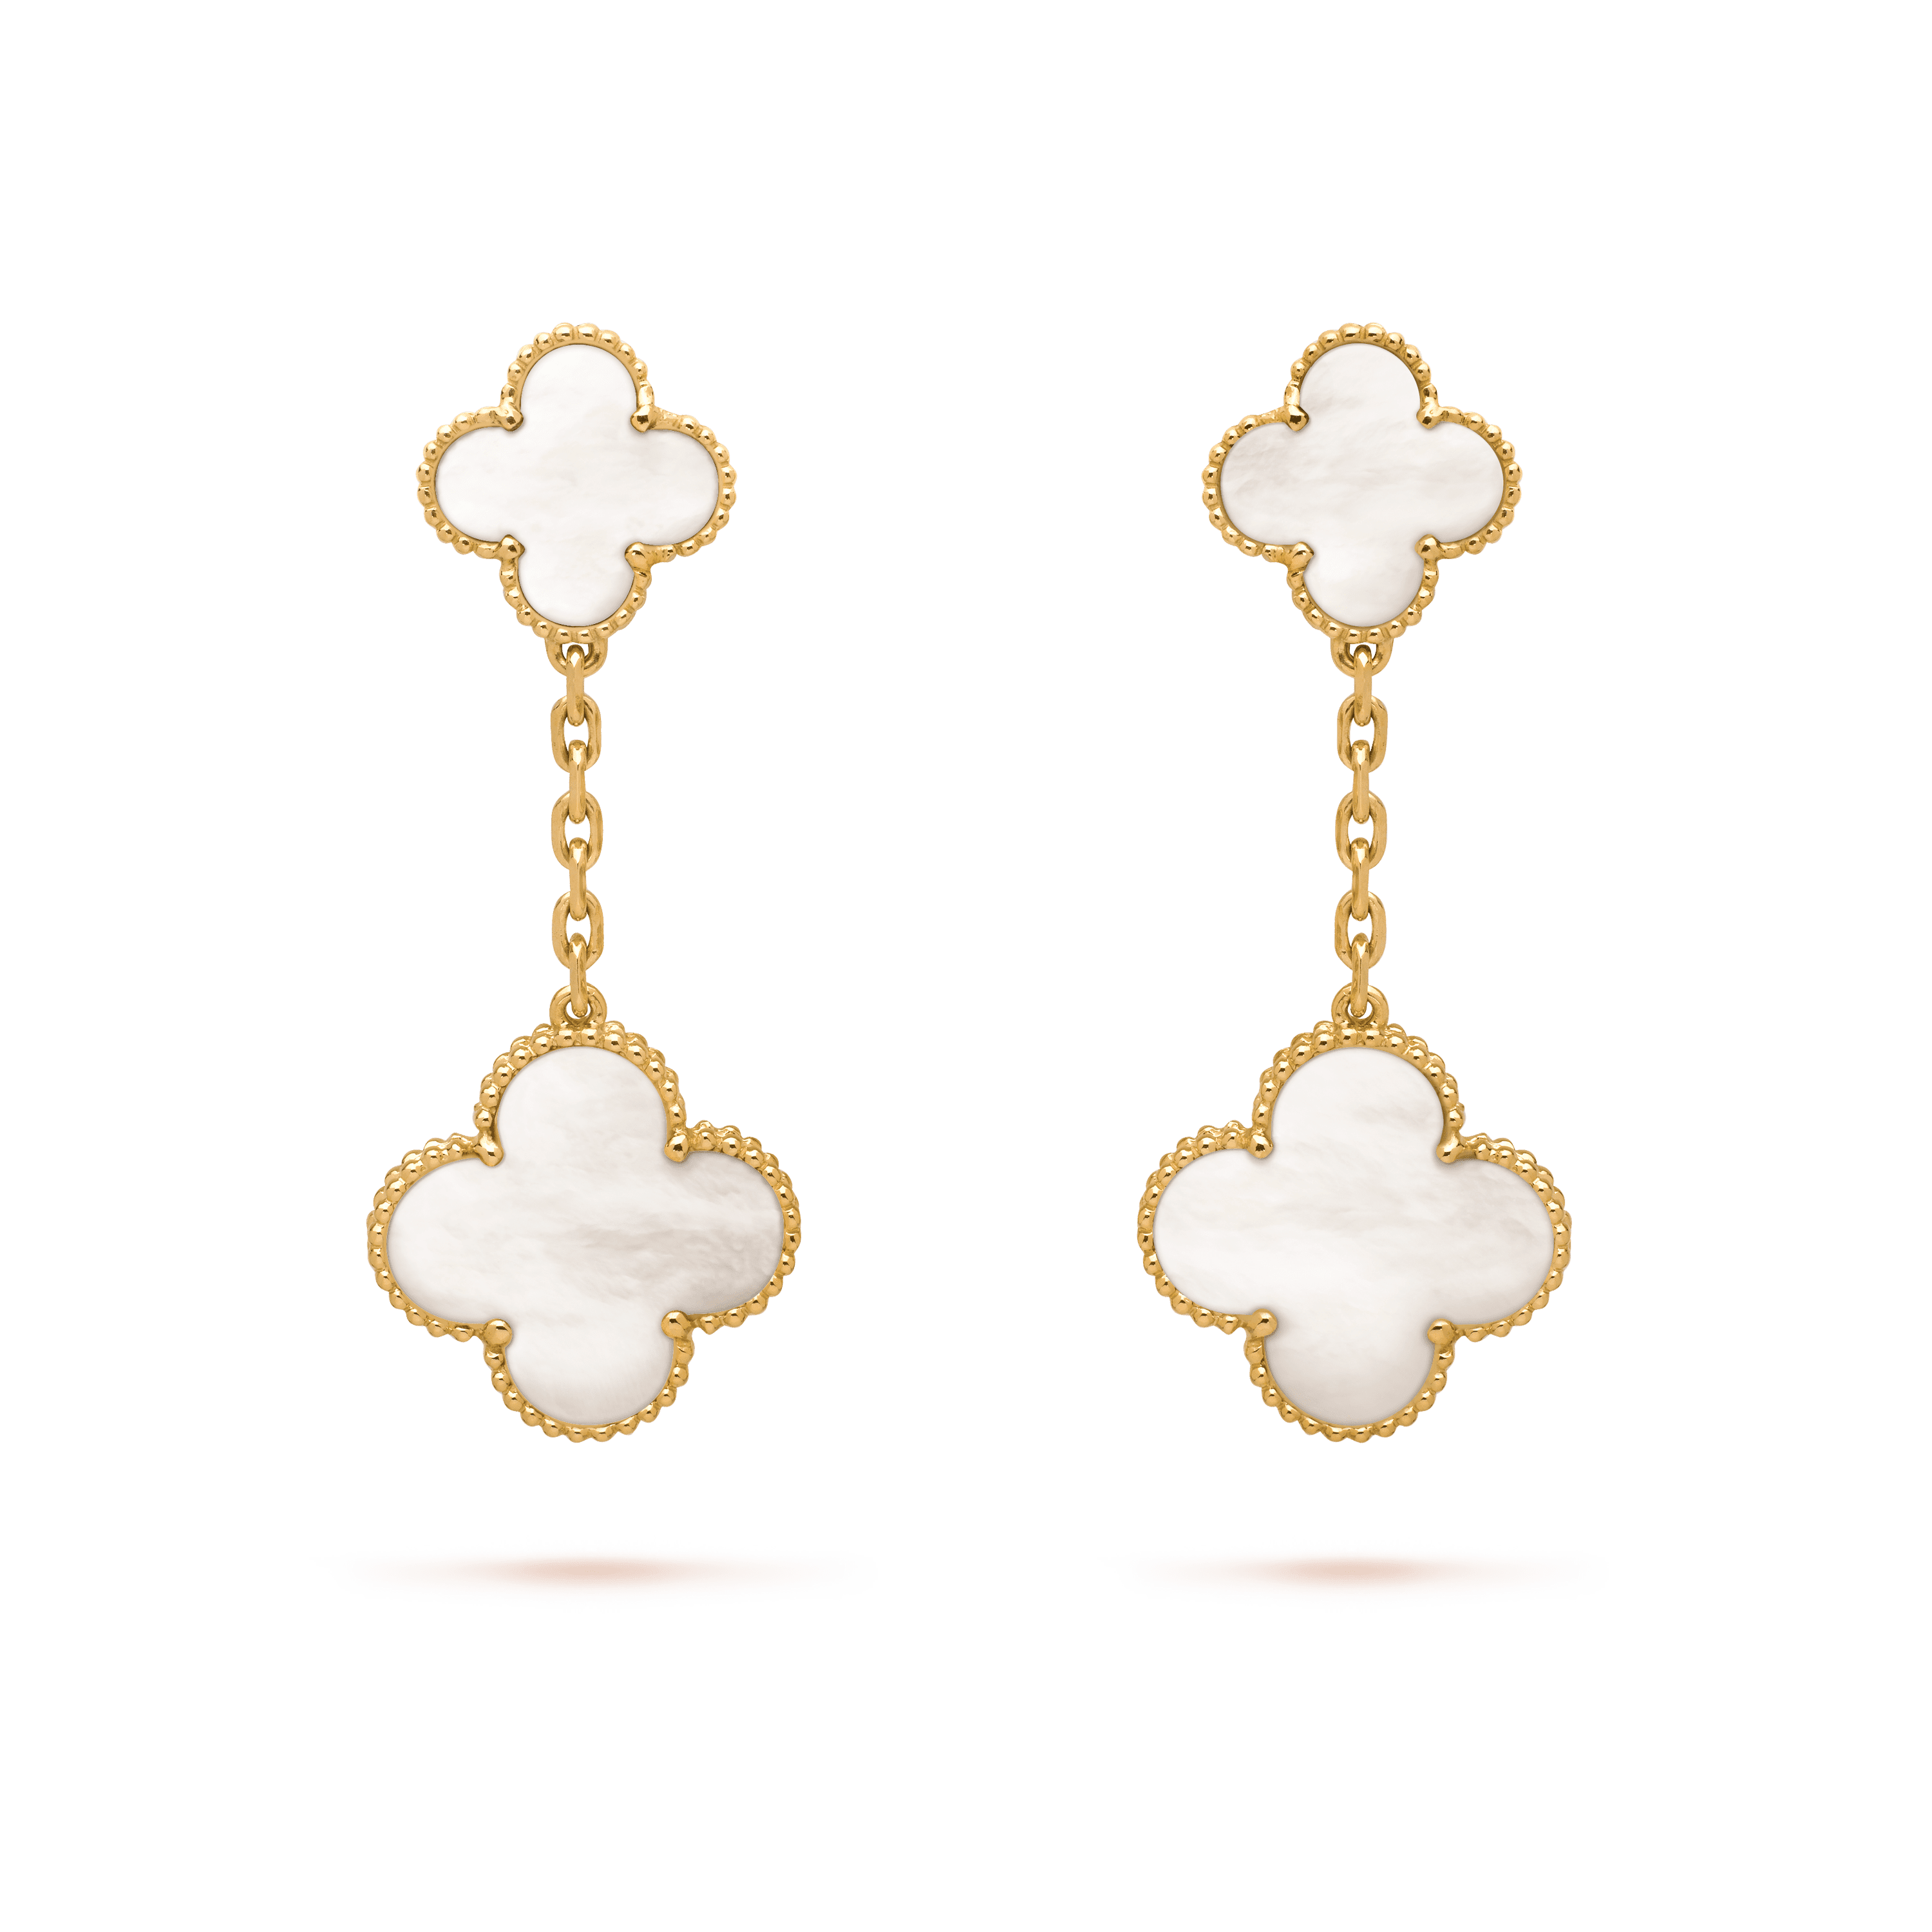 Magic Alhambra earrings, 2 motifs, - Front View - VCARD78800 - Van Cleef & Arpels